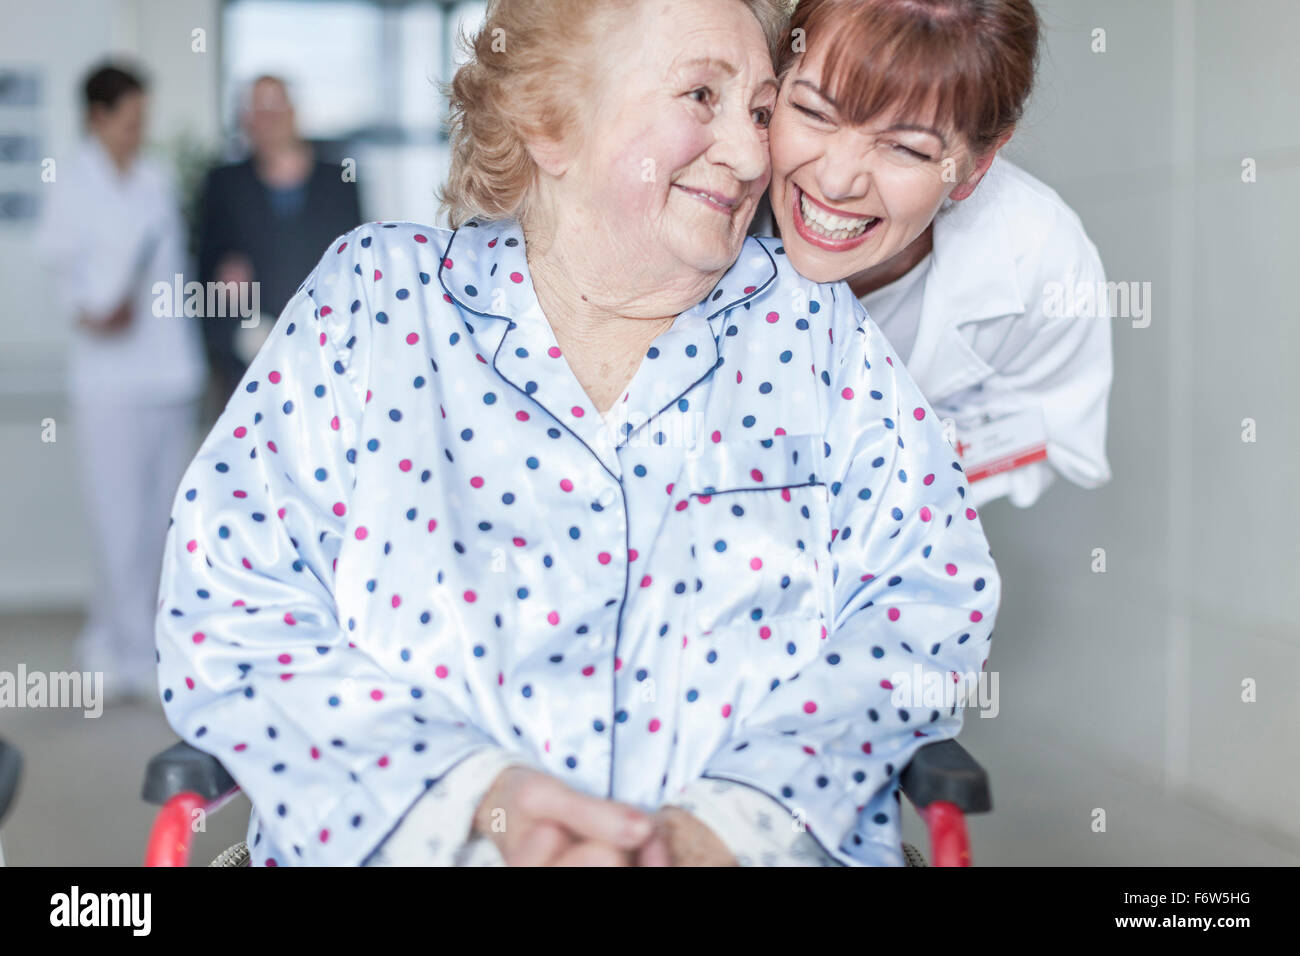 Doctor caring for elderly patient in wheelchair - Stock Image